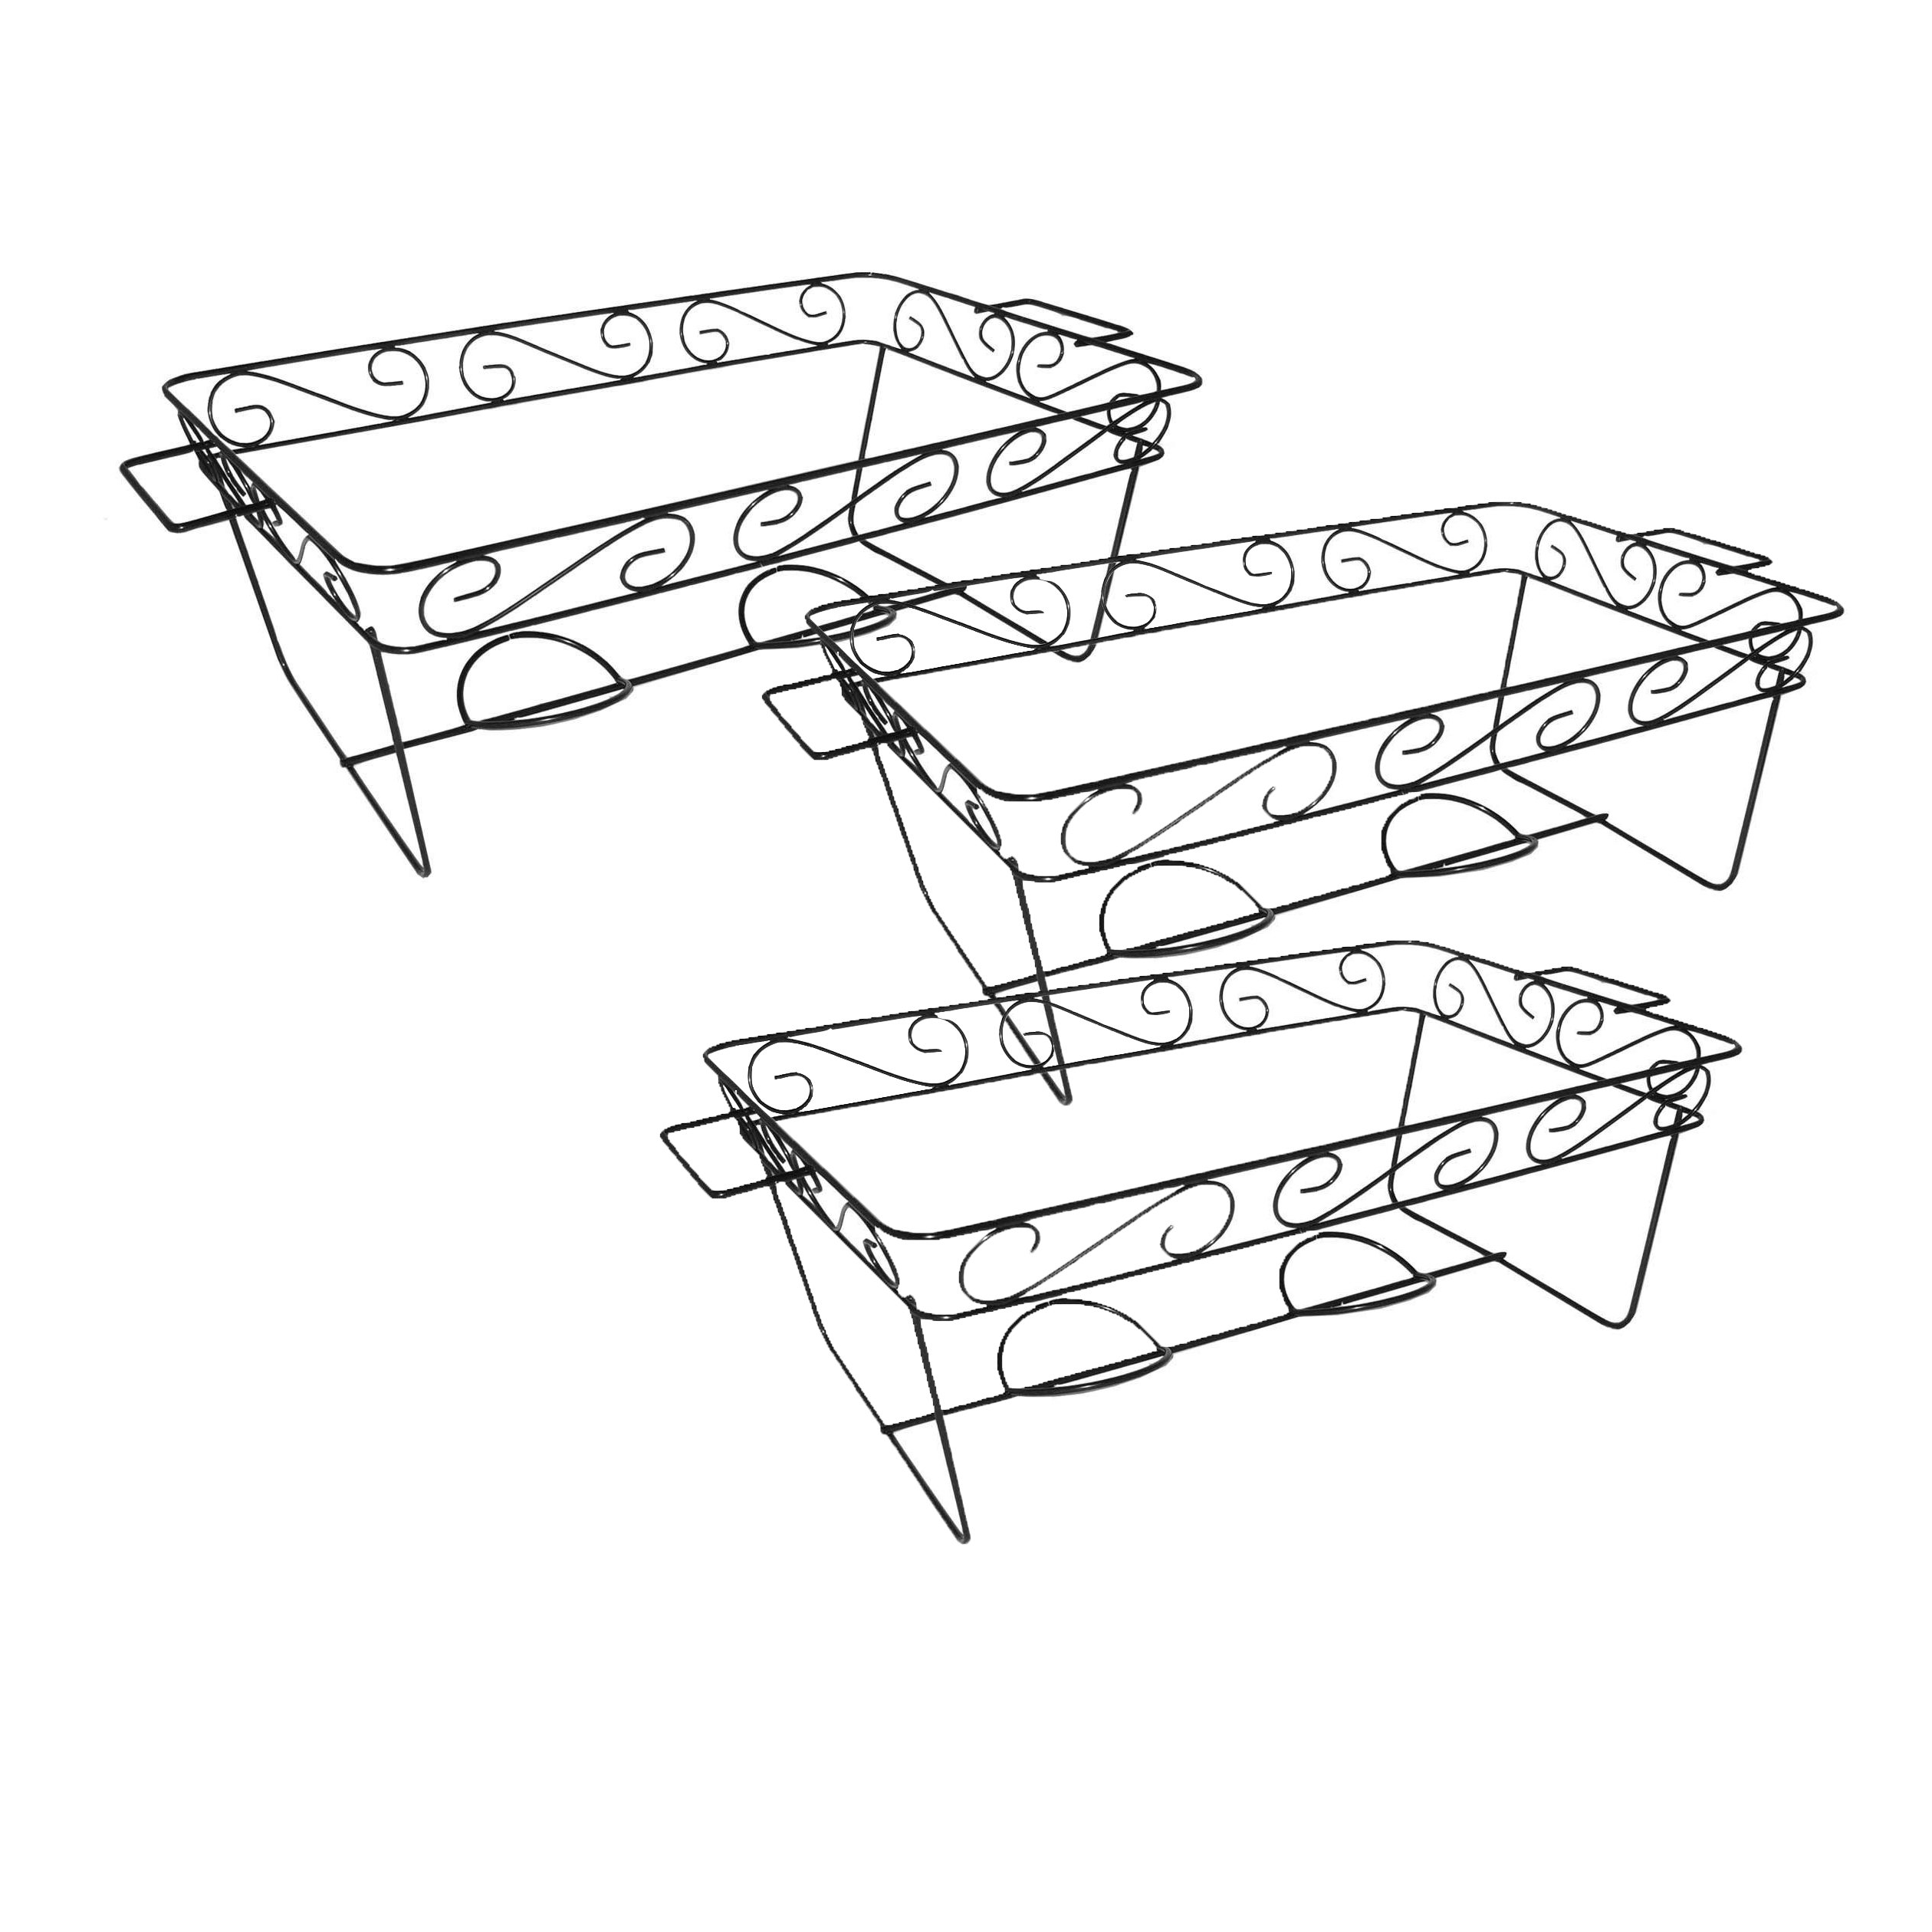 Party Essentials 3-Count Full Size Elegance Chafing Racks, Black